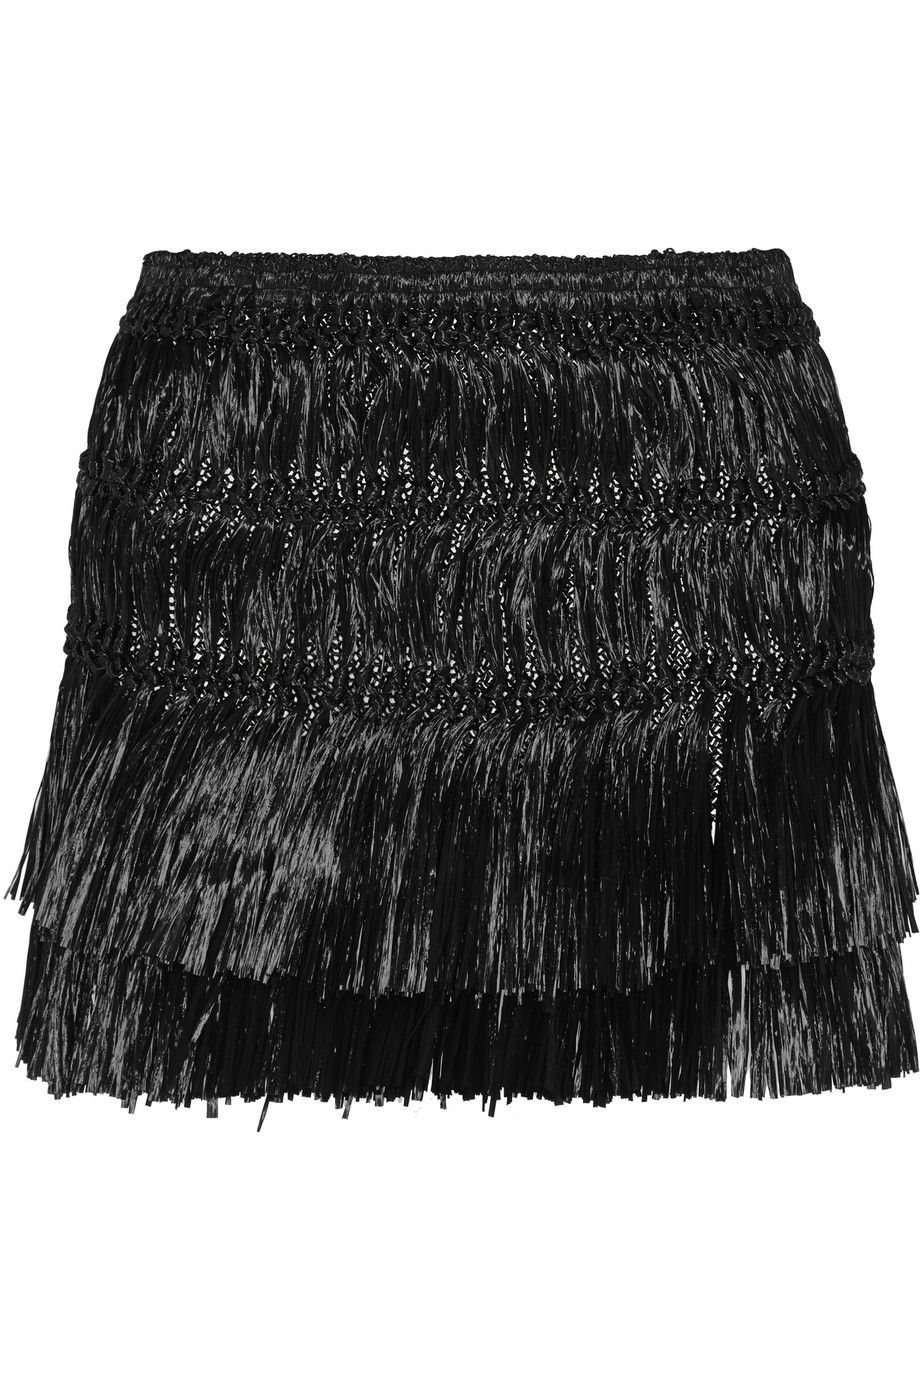 Isabel Marant Copal Fringed Faux Raffia Mini Skirt - Runway Collection